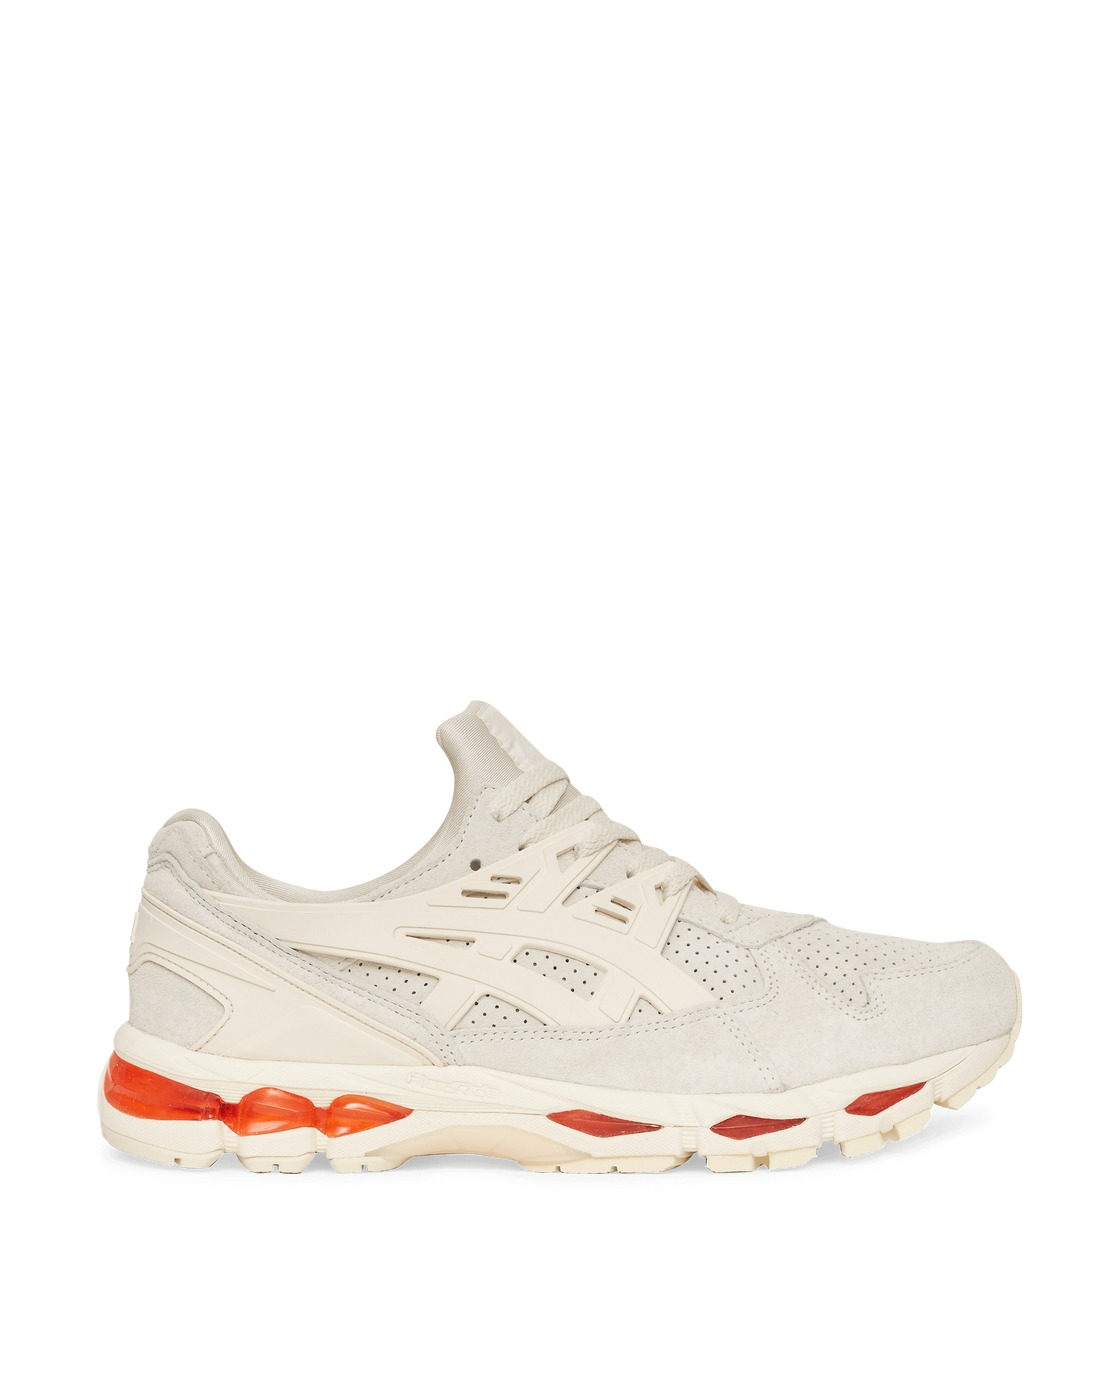 Photo: Asics Gel Kayano Trainer 21 Sneakers Birch/Birch